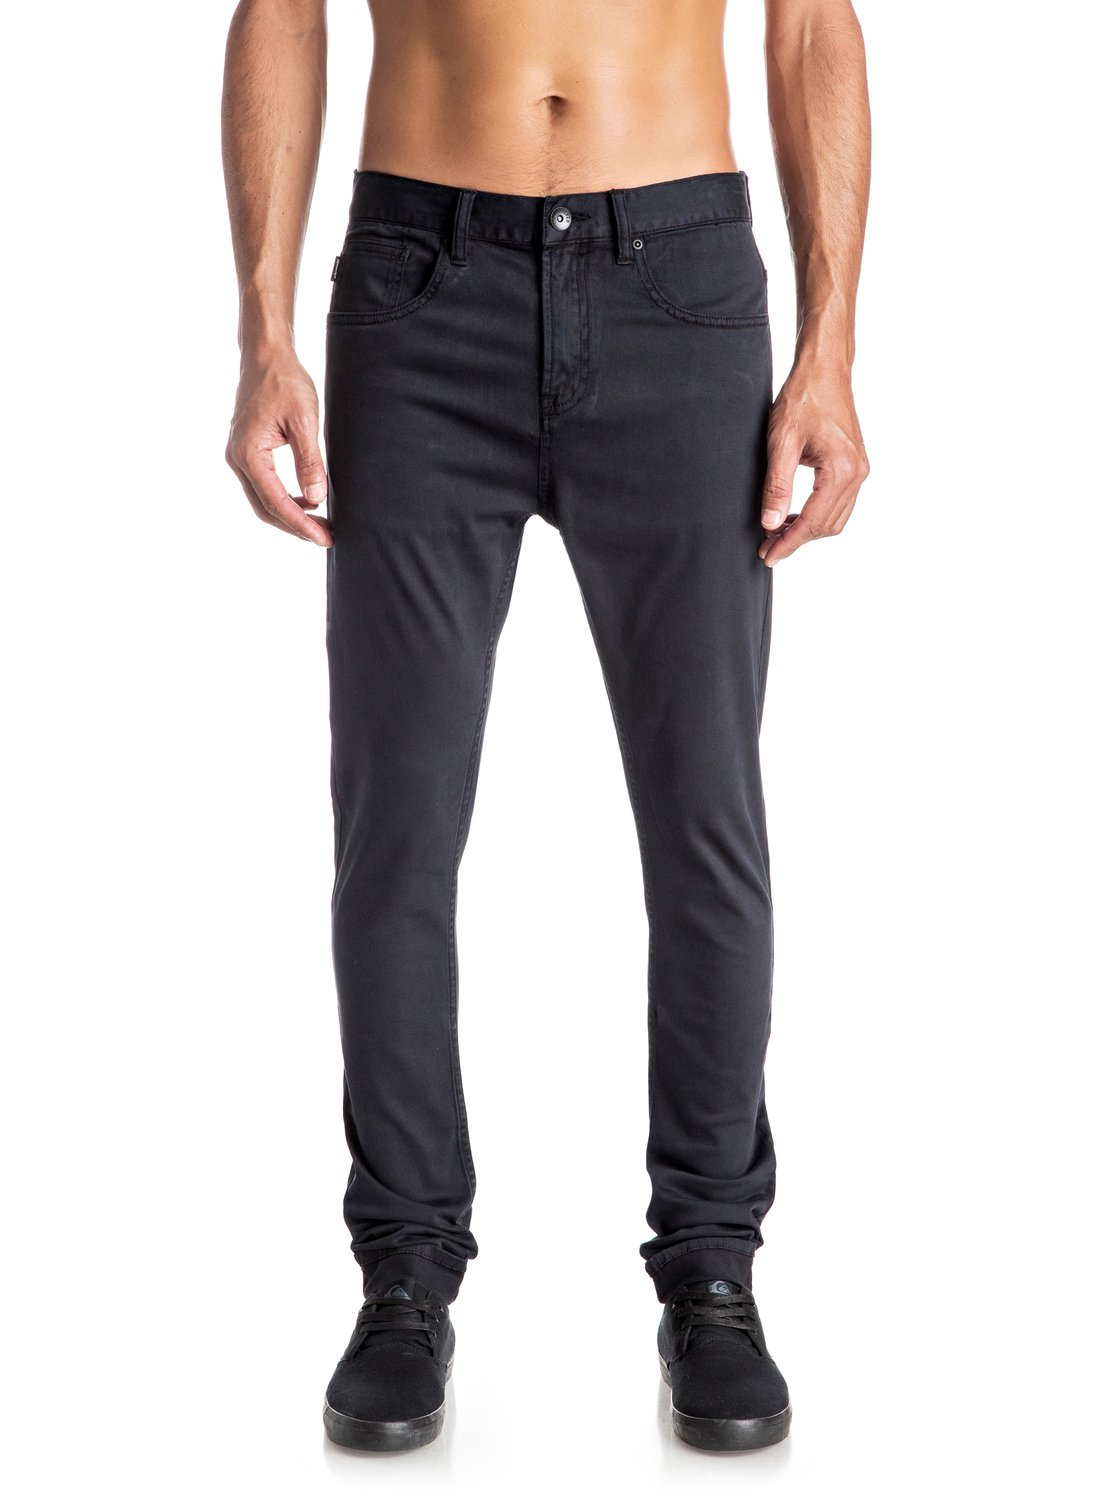 Low Bridge - Pantalon slim skinny pour Homme - Quiksilver